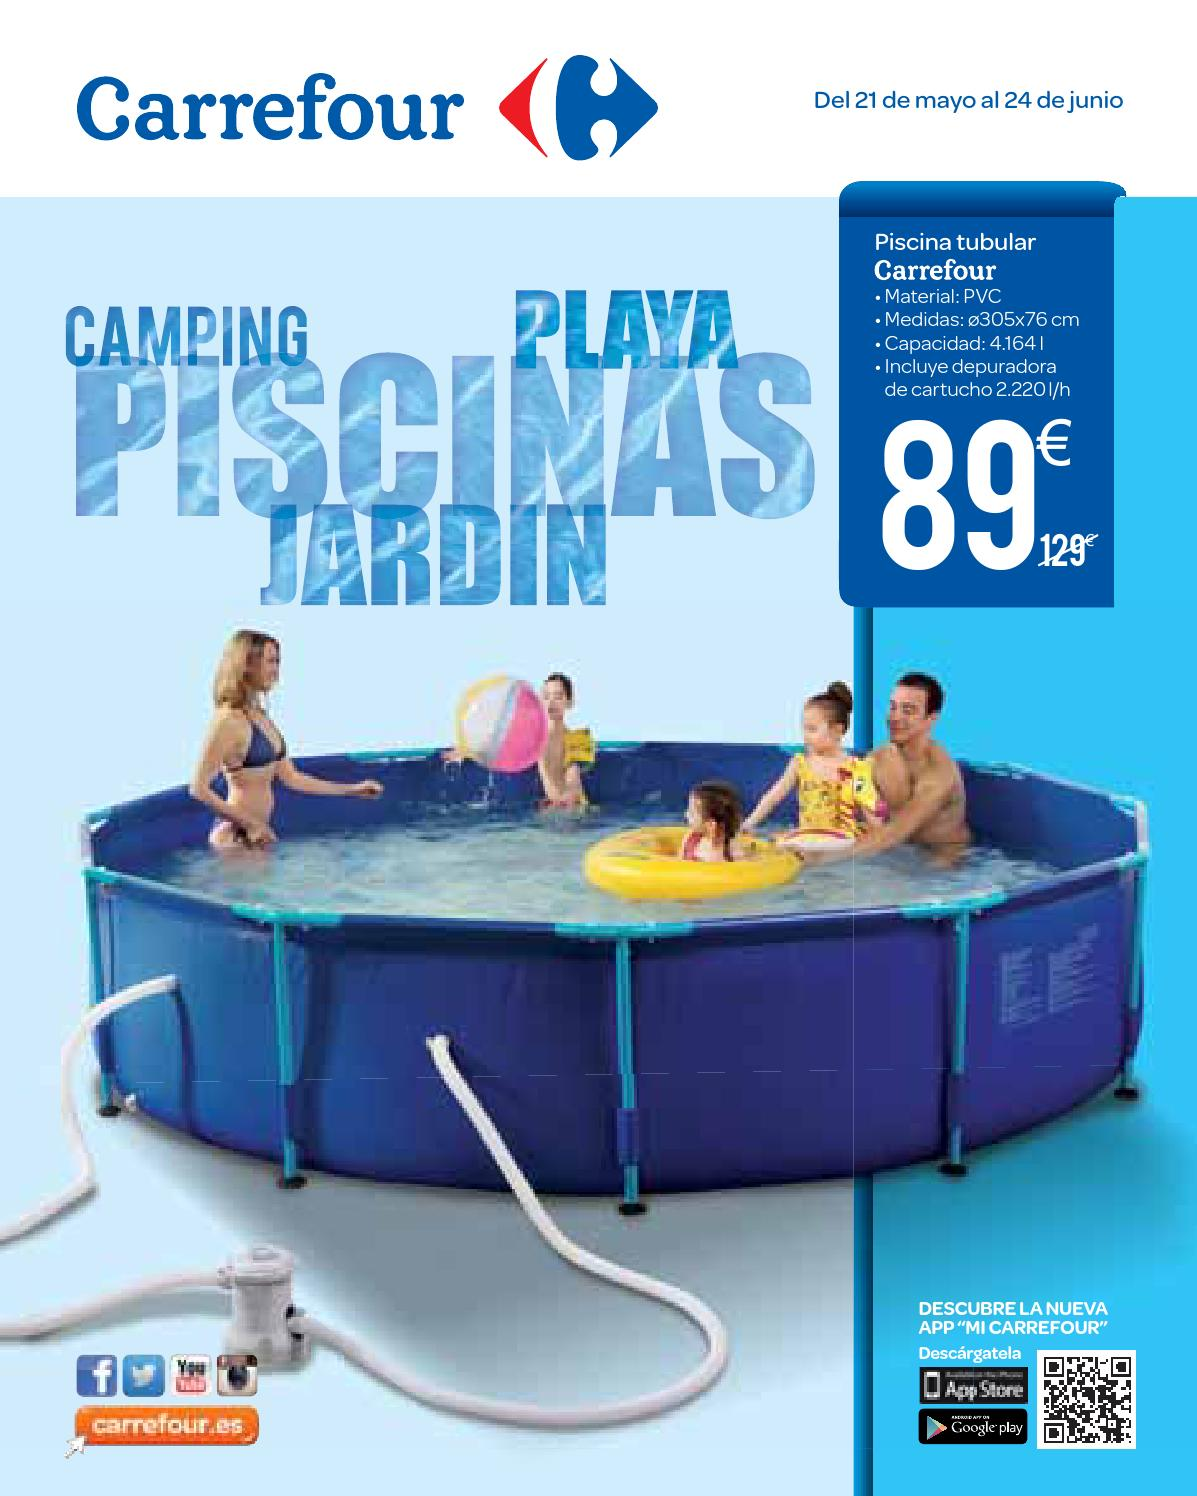 Best jacuzzi jardin carrefour pictures amazing house - Pergolas carrefour 2017 ...